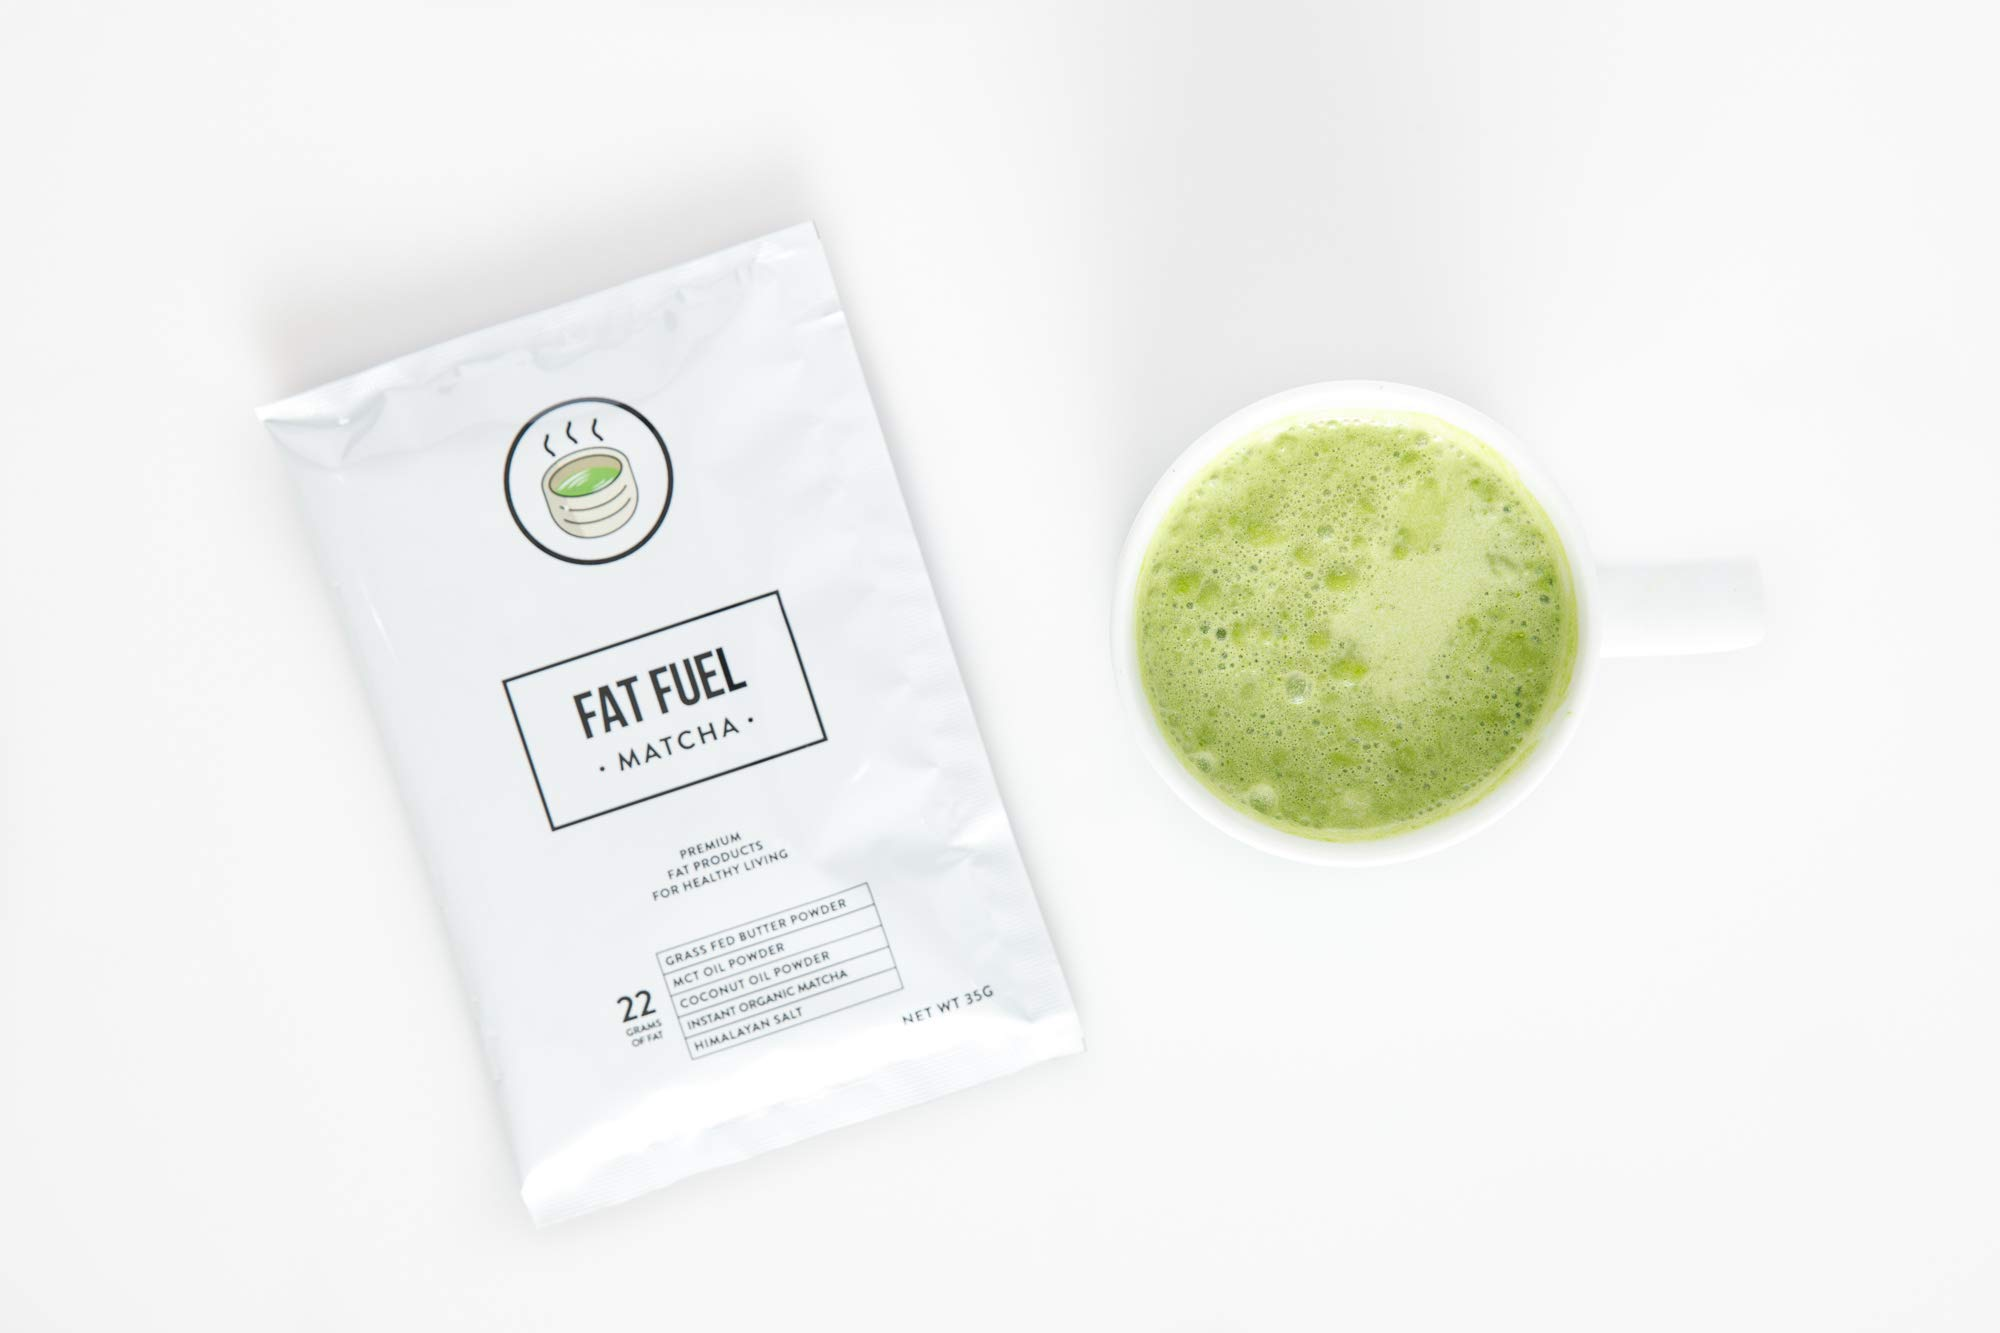 Fat Fuel Company Keto Matcha Green Tea Powder | MCT, Coconut Oil, Himalayan Salt & Grass-Fed Butter | Organic Ingredients | Energy, Focus , Detox | Perfect Drink For Low-Carb Diet | 15 Packets by The Fat Fuel Company (Image #3)